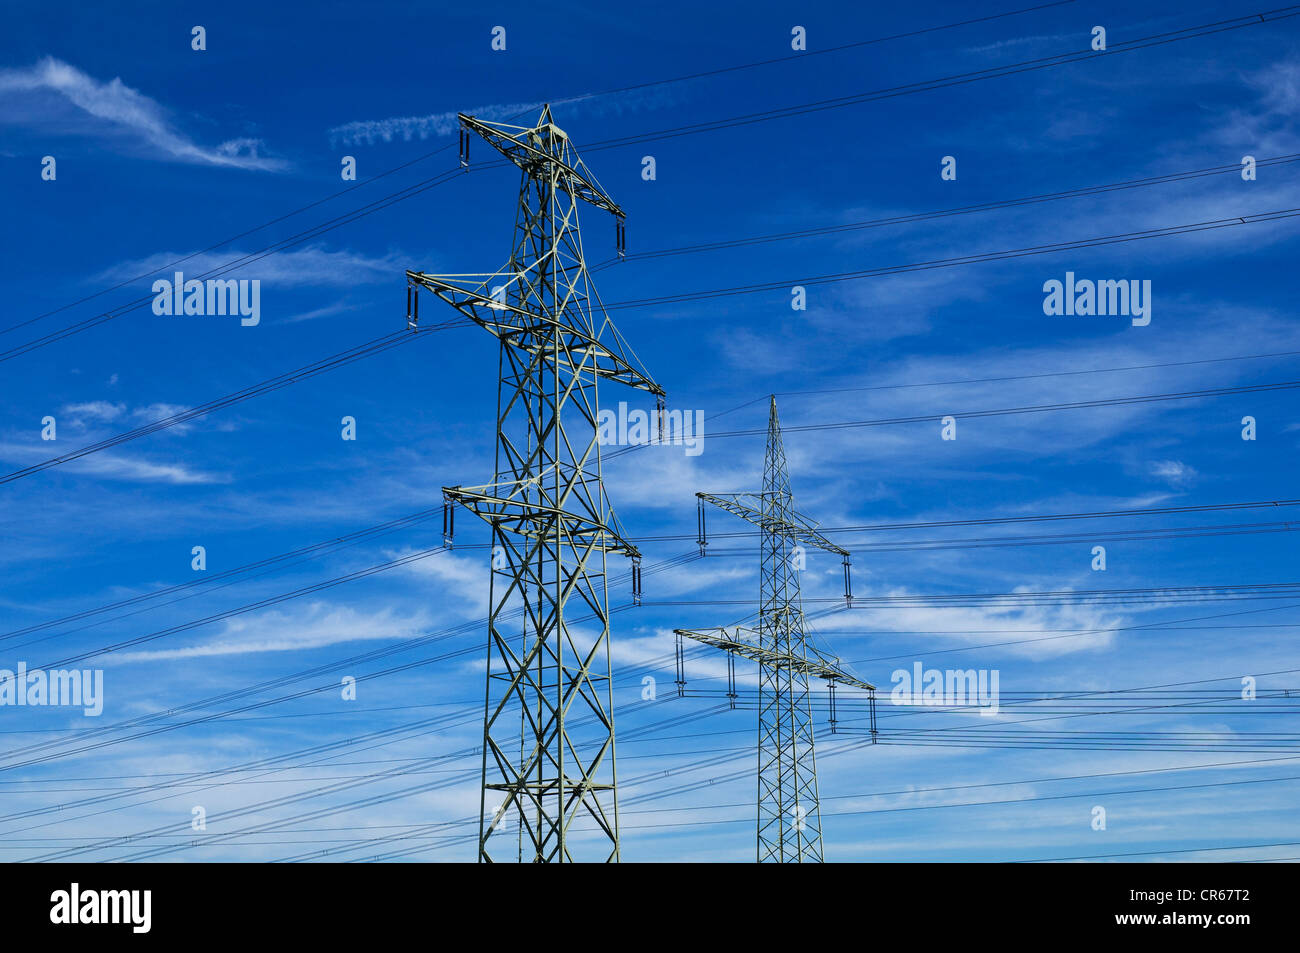 Two electricity pylons against blue sky with cirrostratus clouds - Stock Image